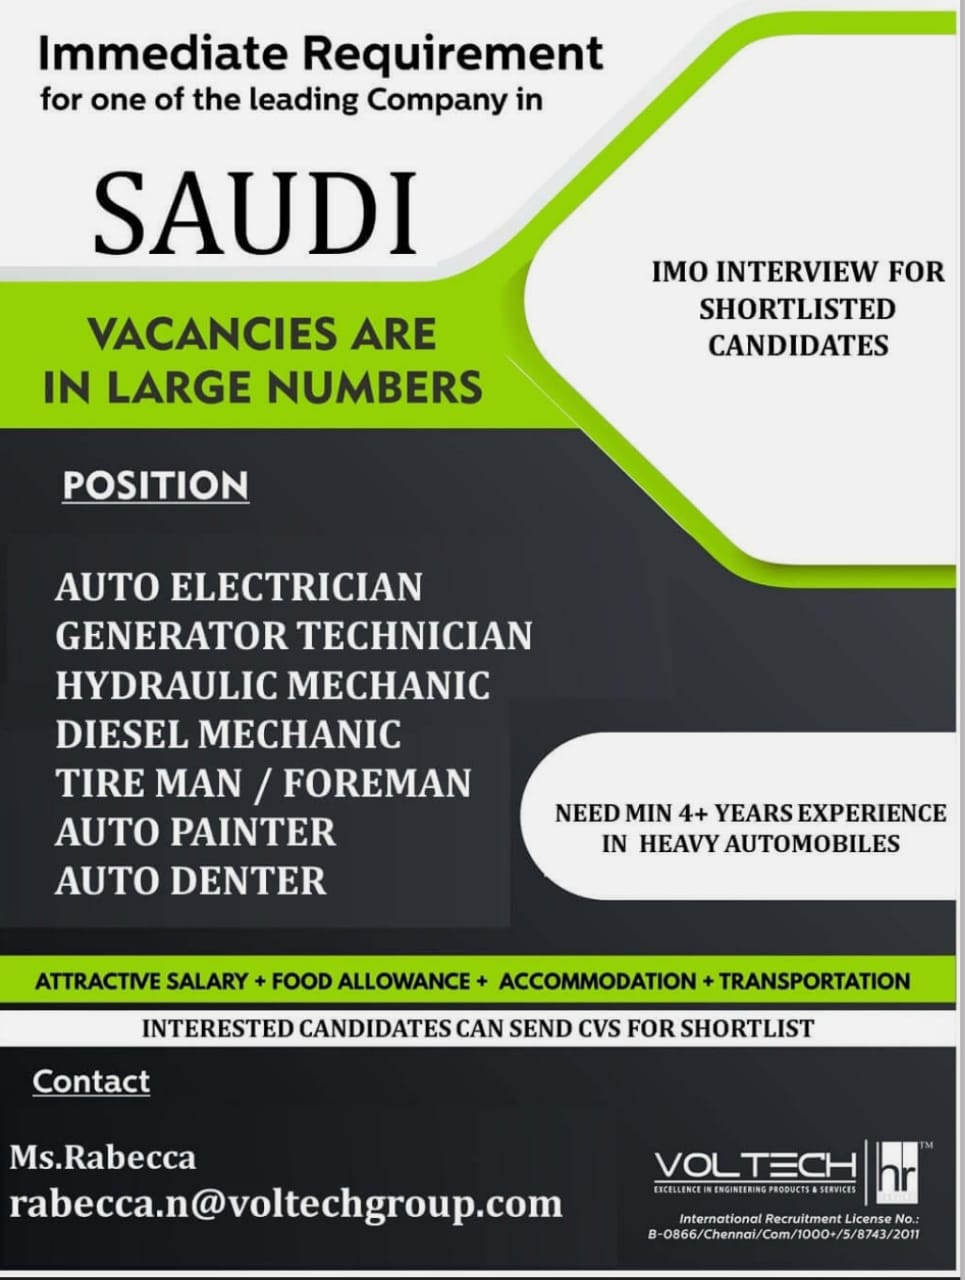 IMMEDIATE REQUIREMENT FOR LEADING COMPANY IN SAUDI ARABIA